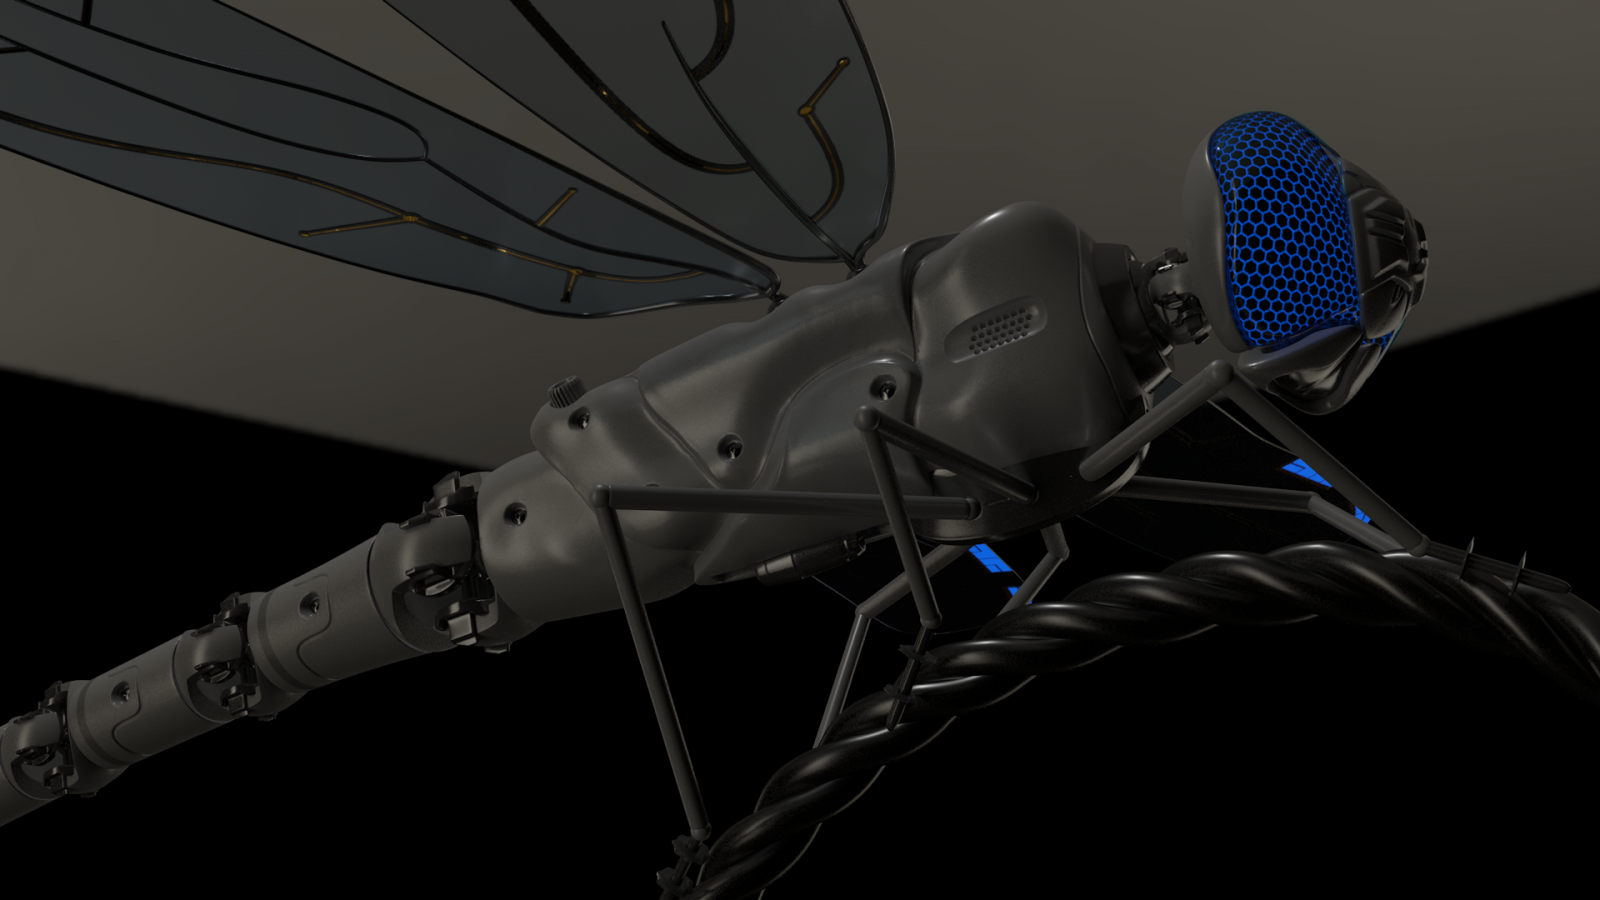 Dragonfly2 based on Intel Core 2 Duo